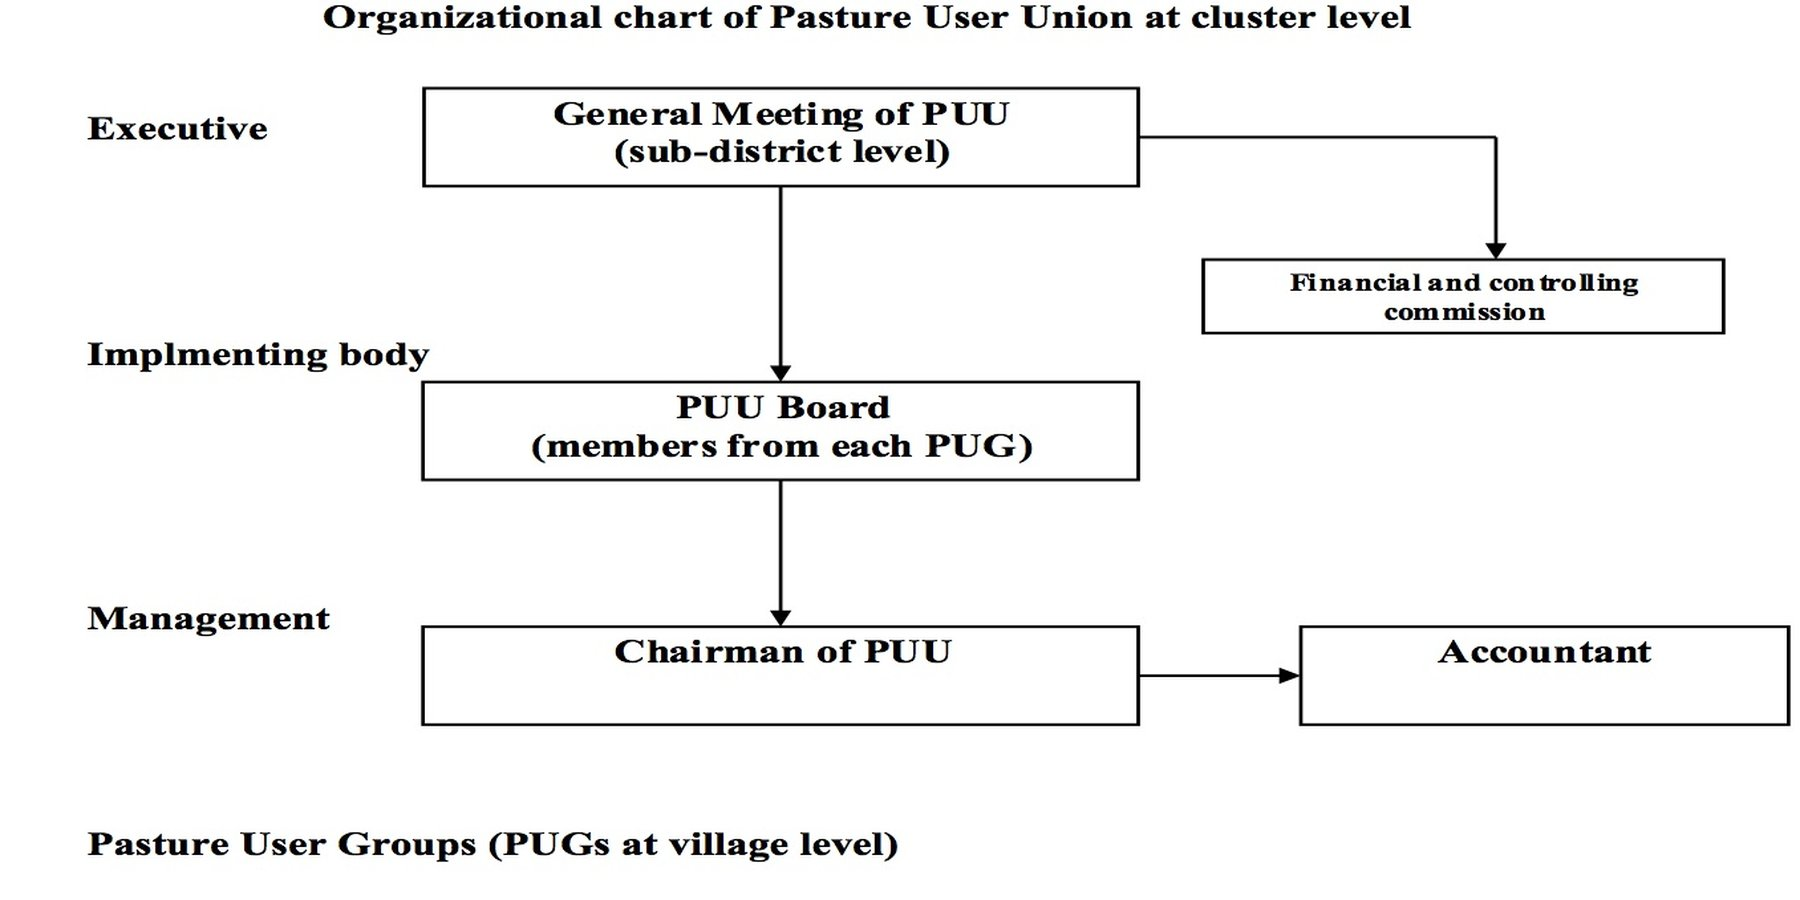 Organizational chart of the Pasture User Union at cluster level